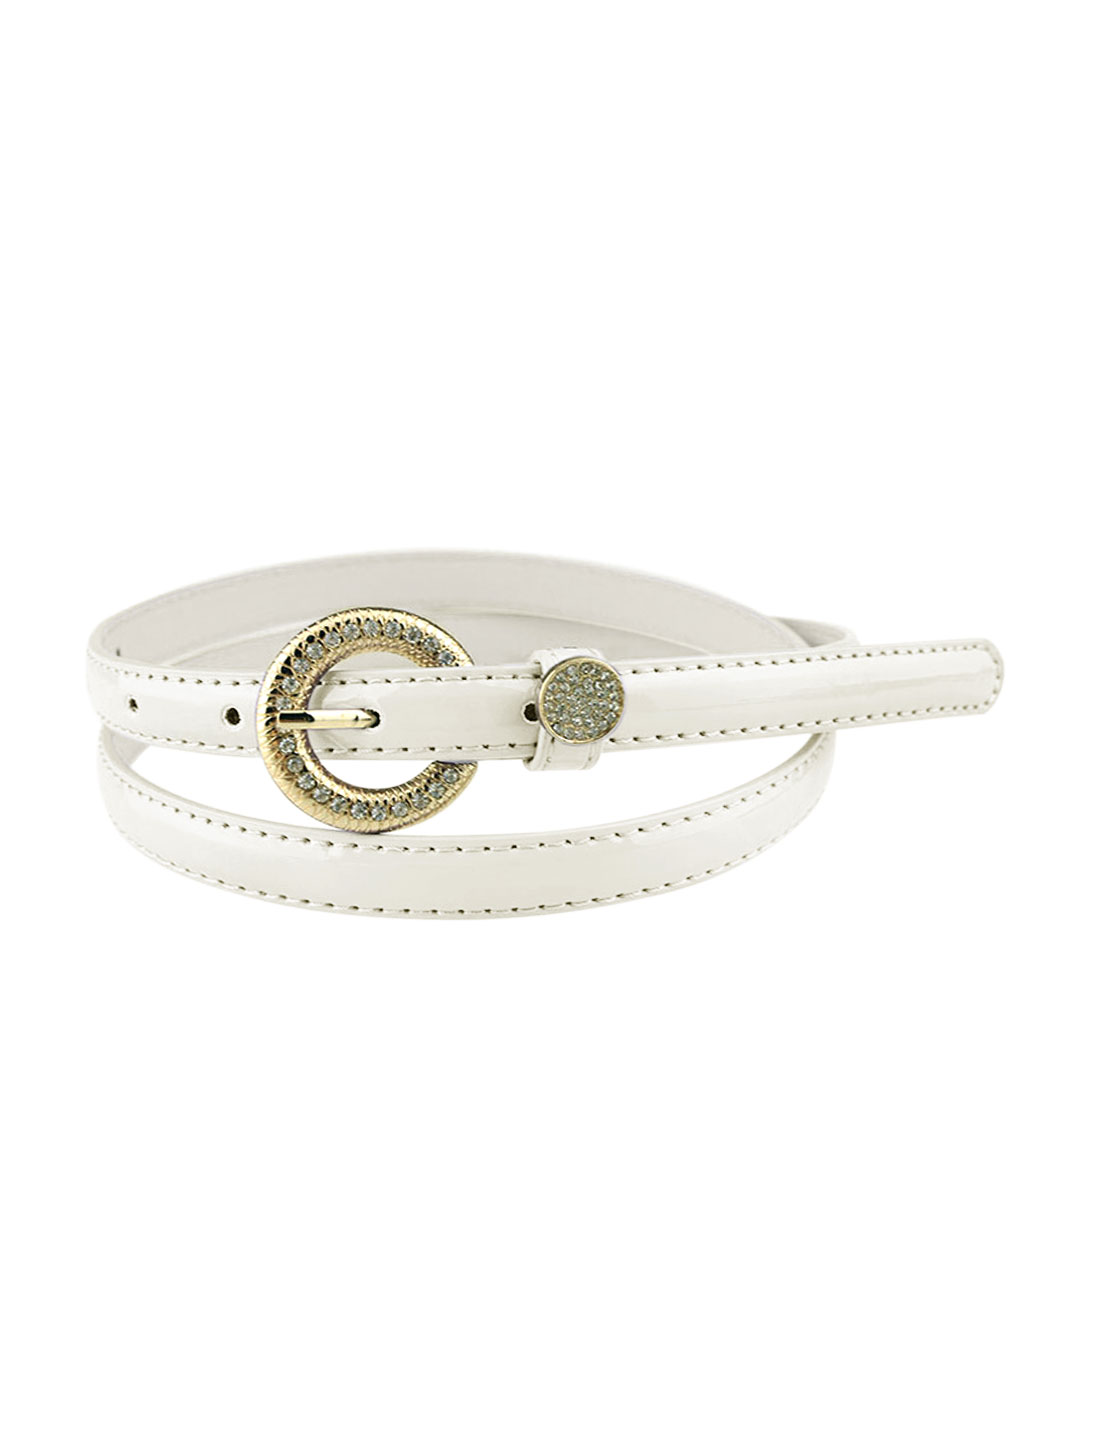 Women Rhinestone Decor Single Pin Buckle Waist Belt White